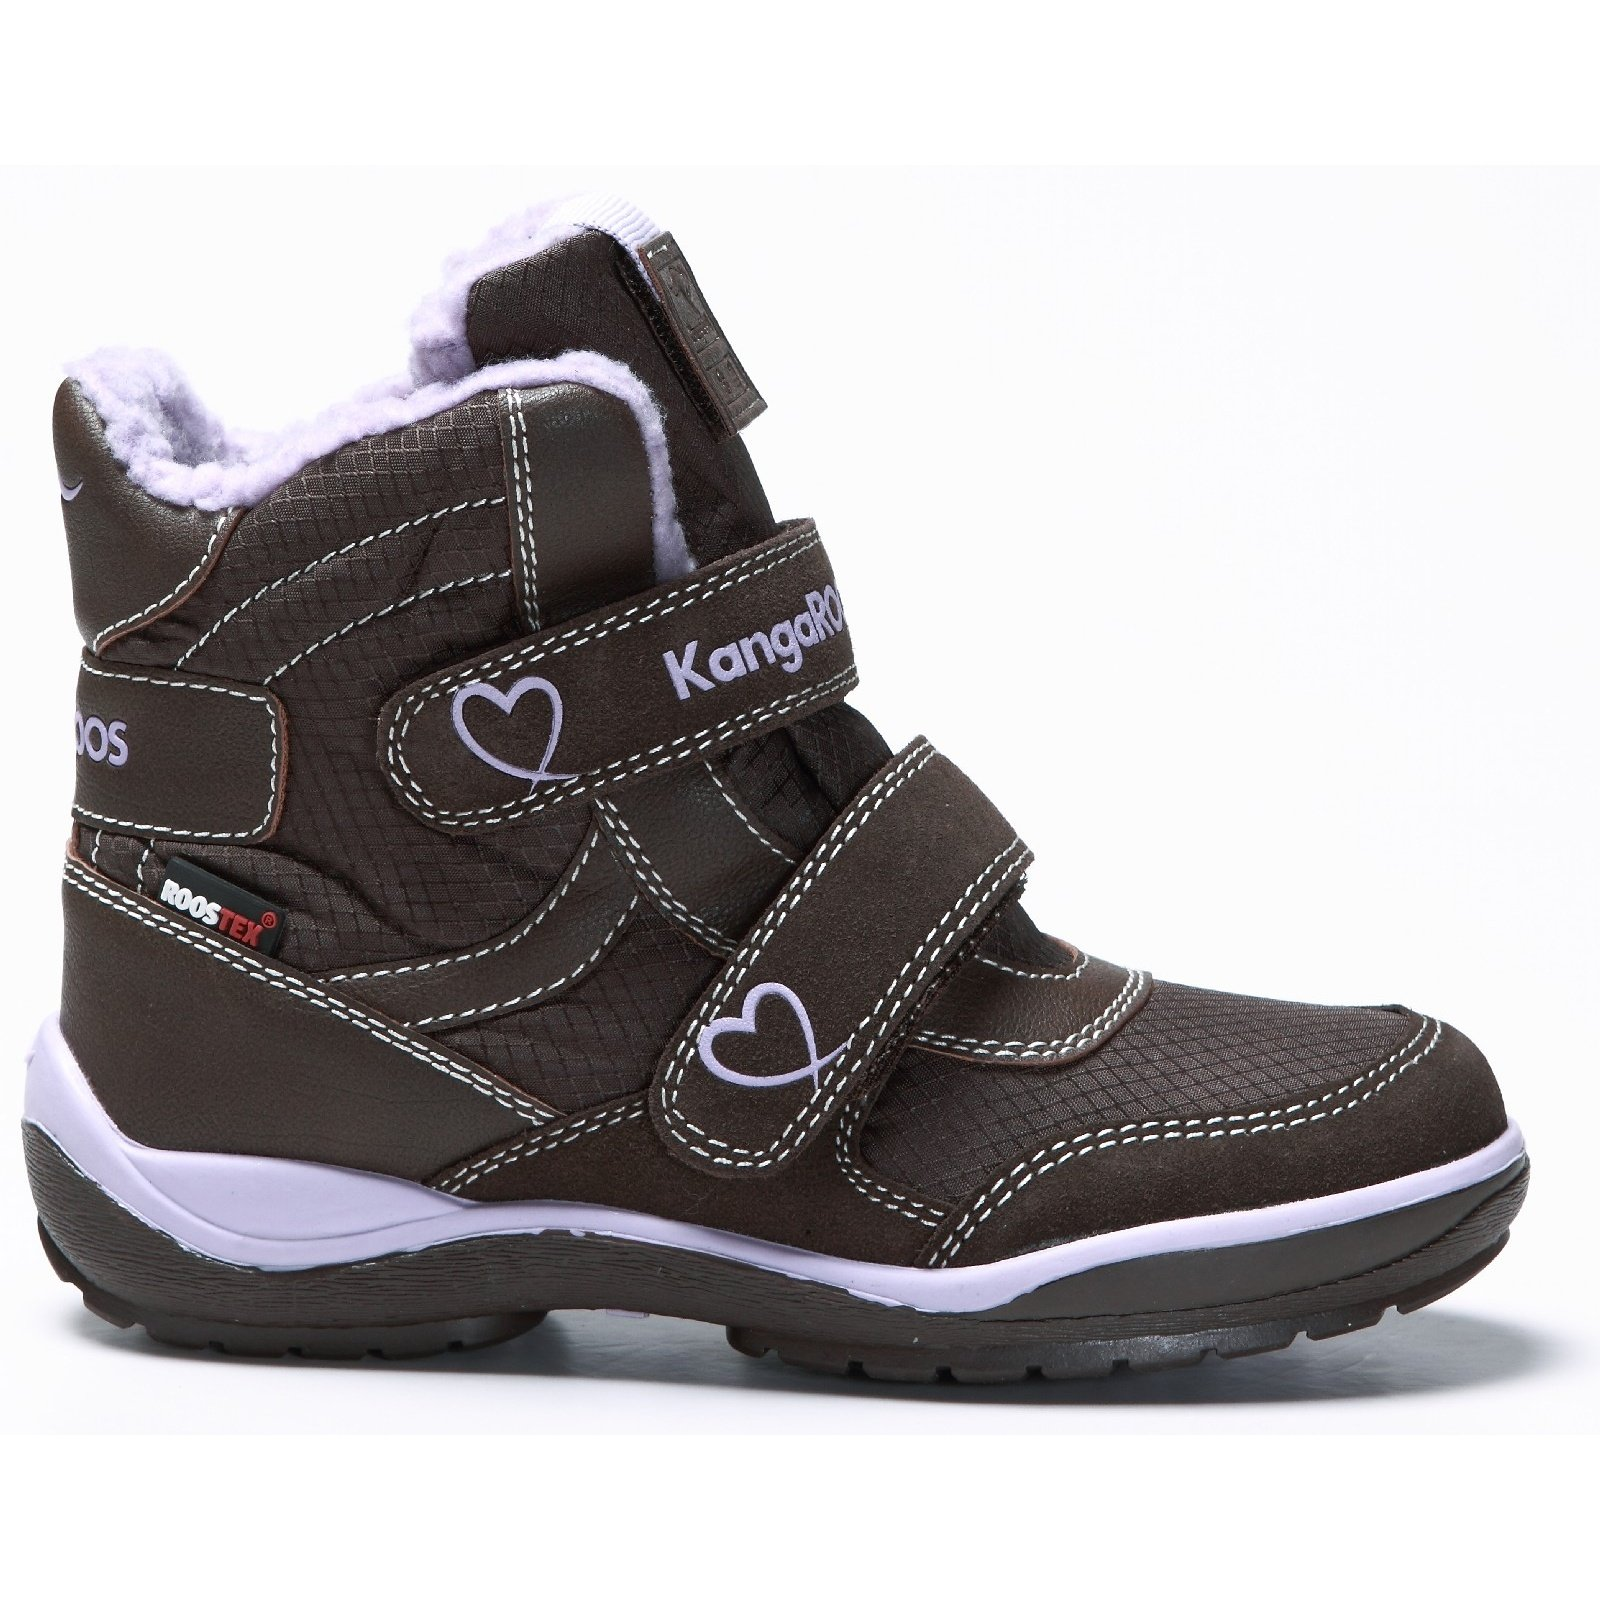 KangaROOS Childrens/Girls Short Leg 2019 Snow Boots (3.5 US) (Brown/Lime)